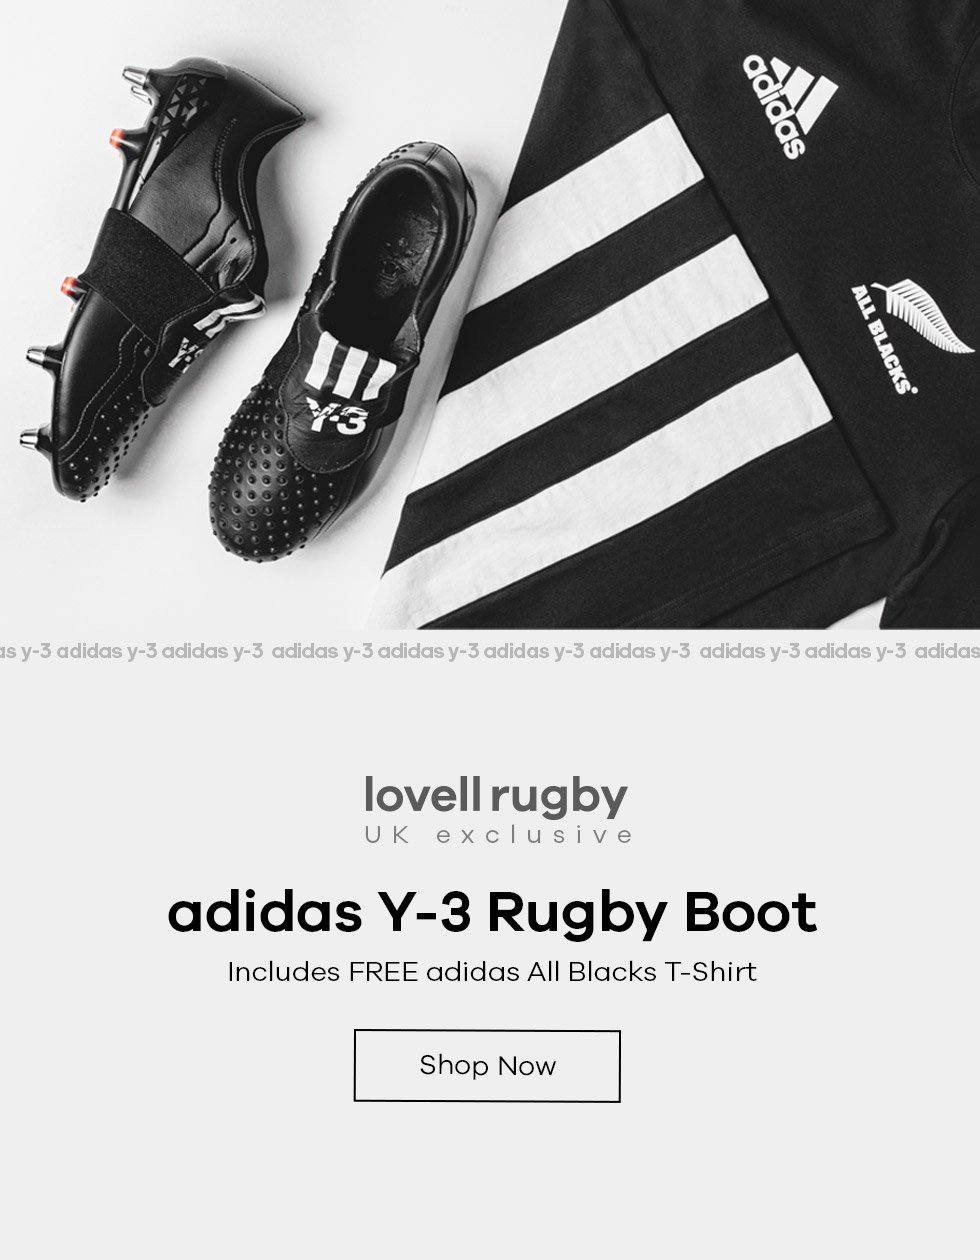 Lovell Rugby – Rugby Shirts, Boots, Coaching, Training